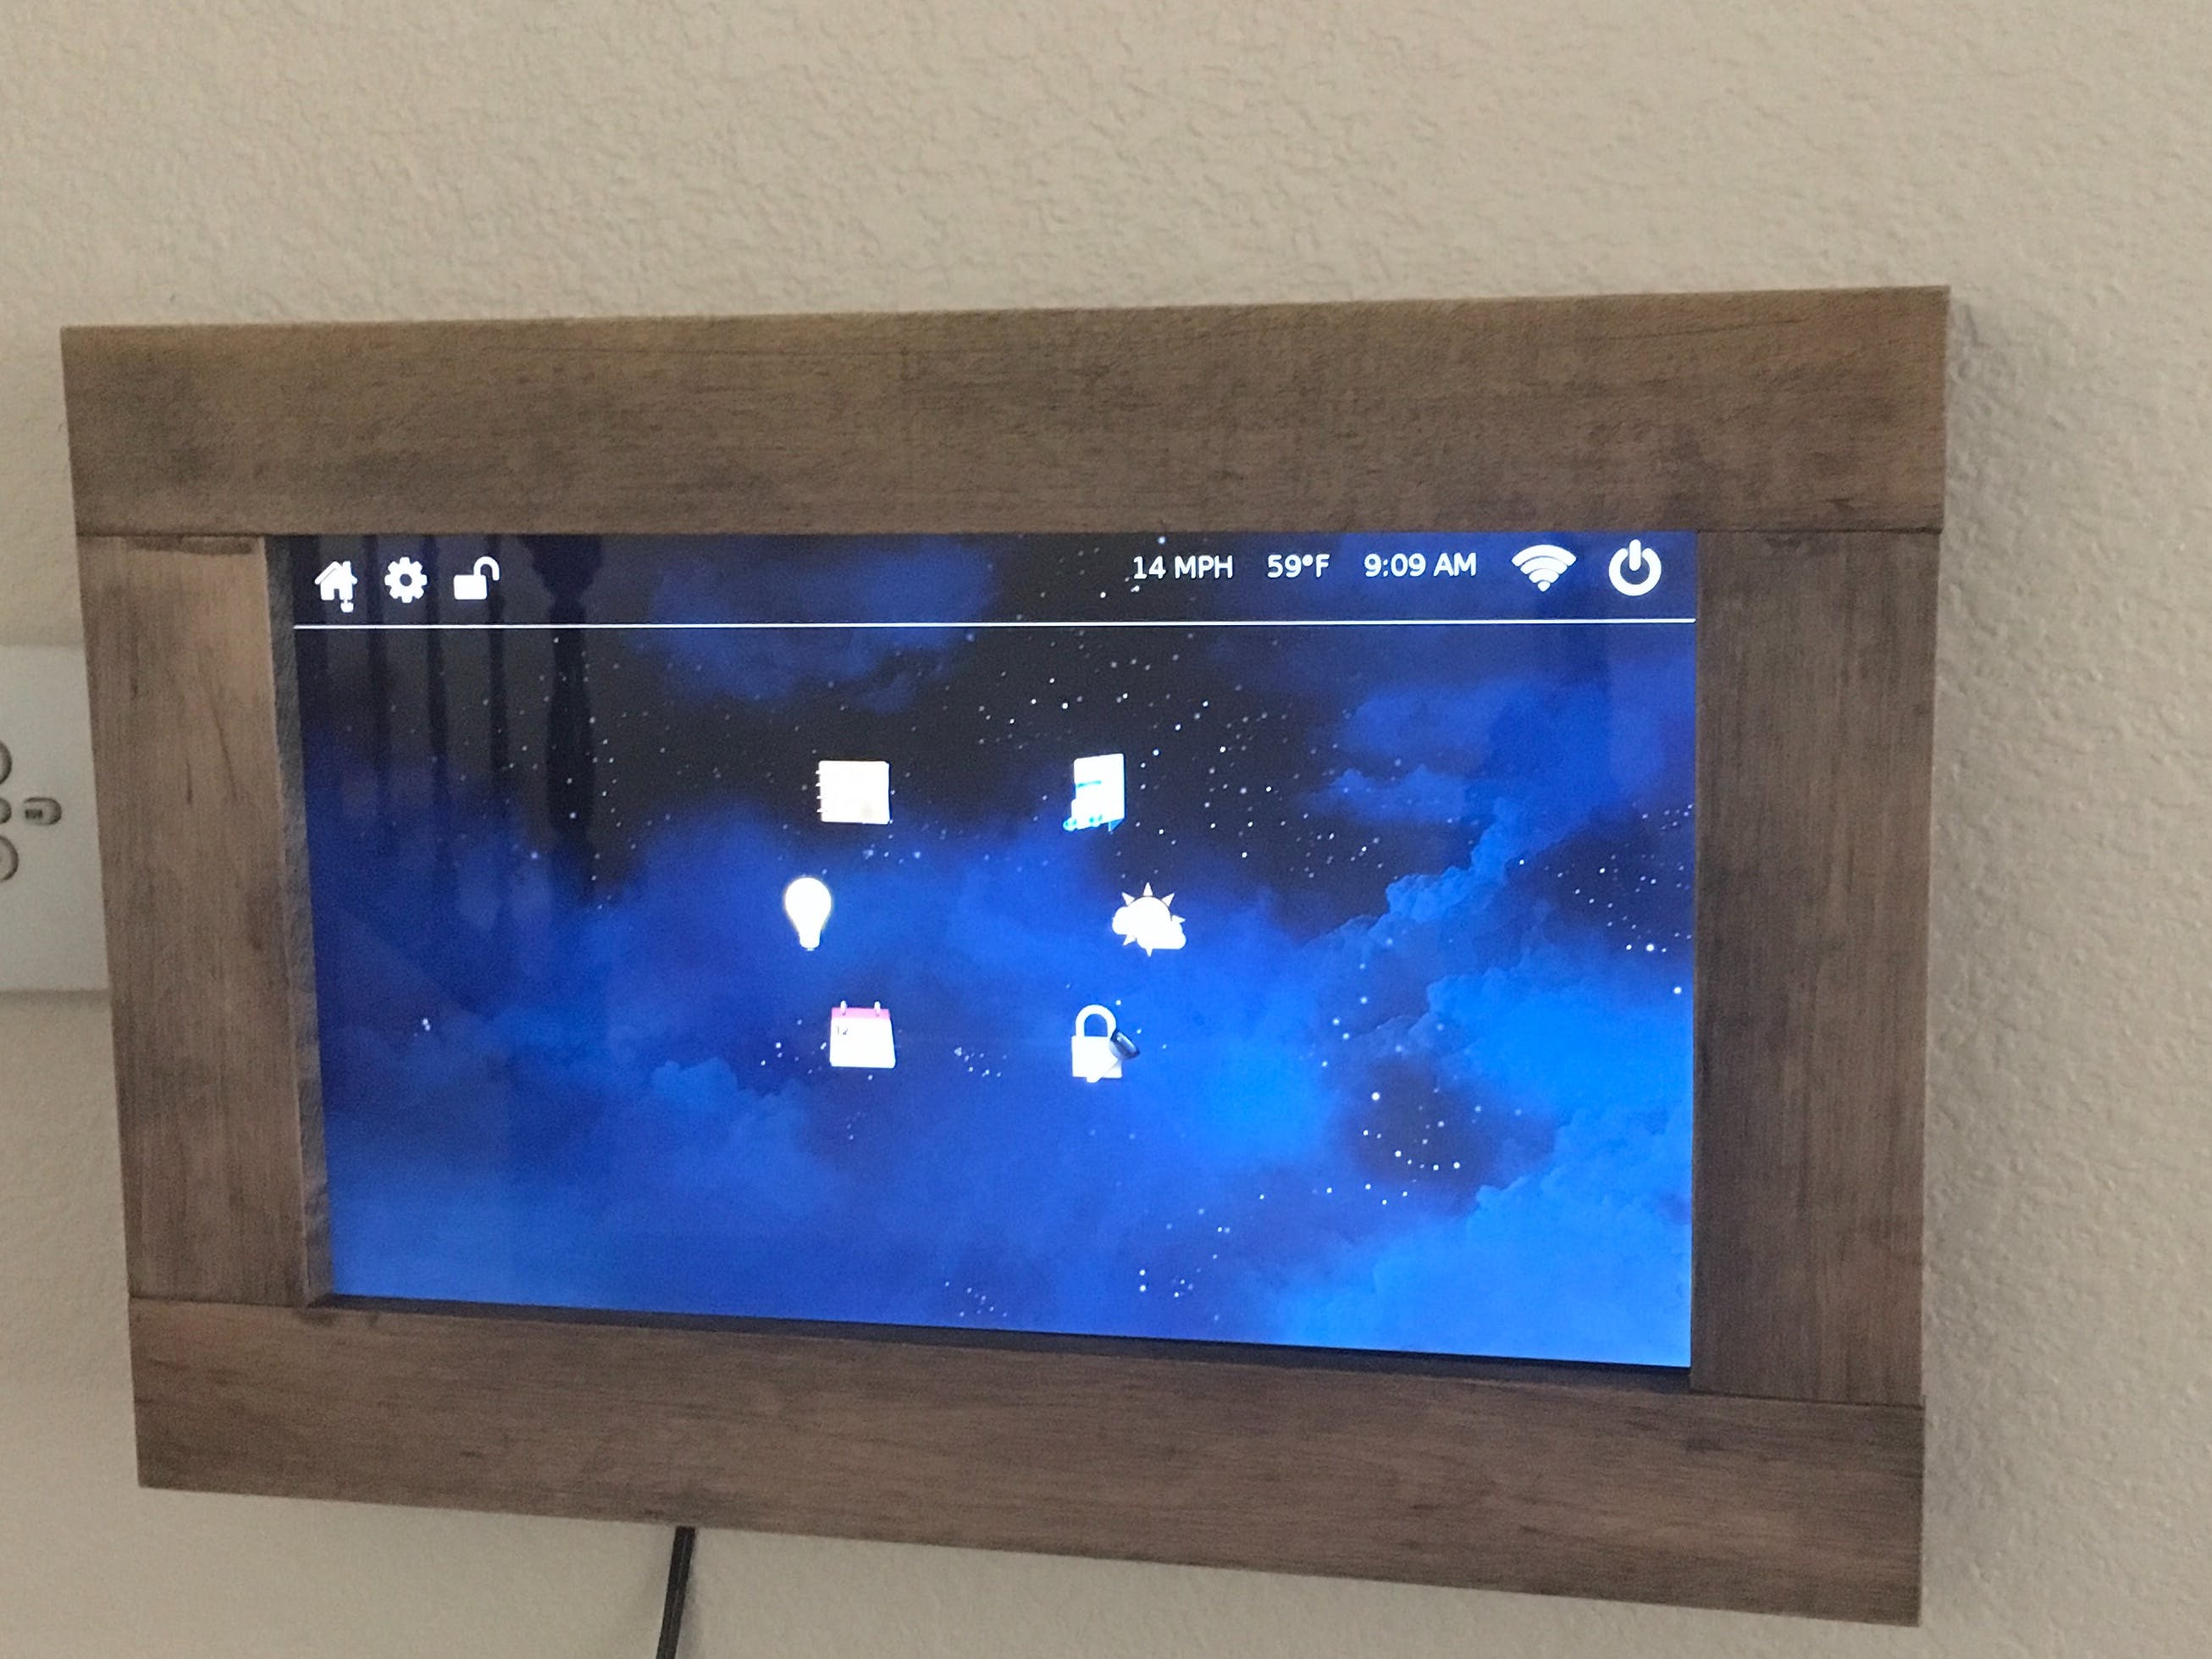 Home Automation Control Panel